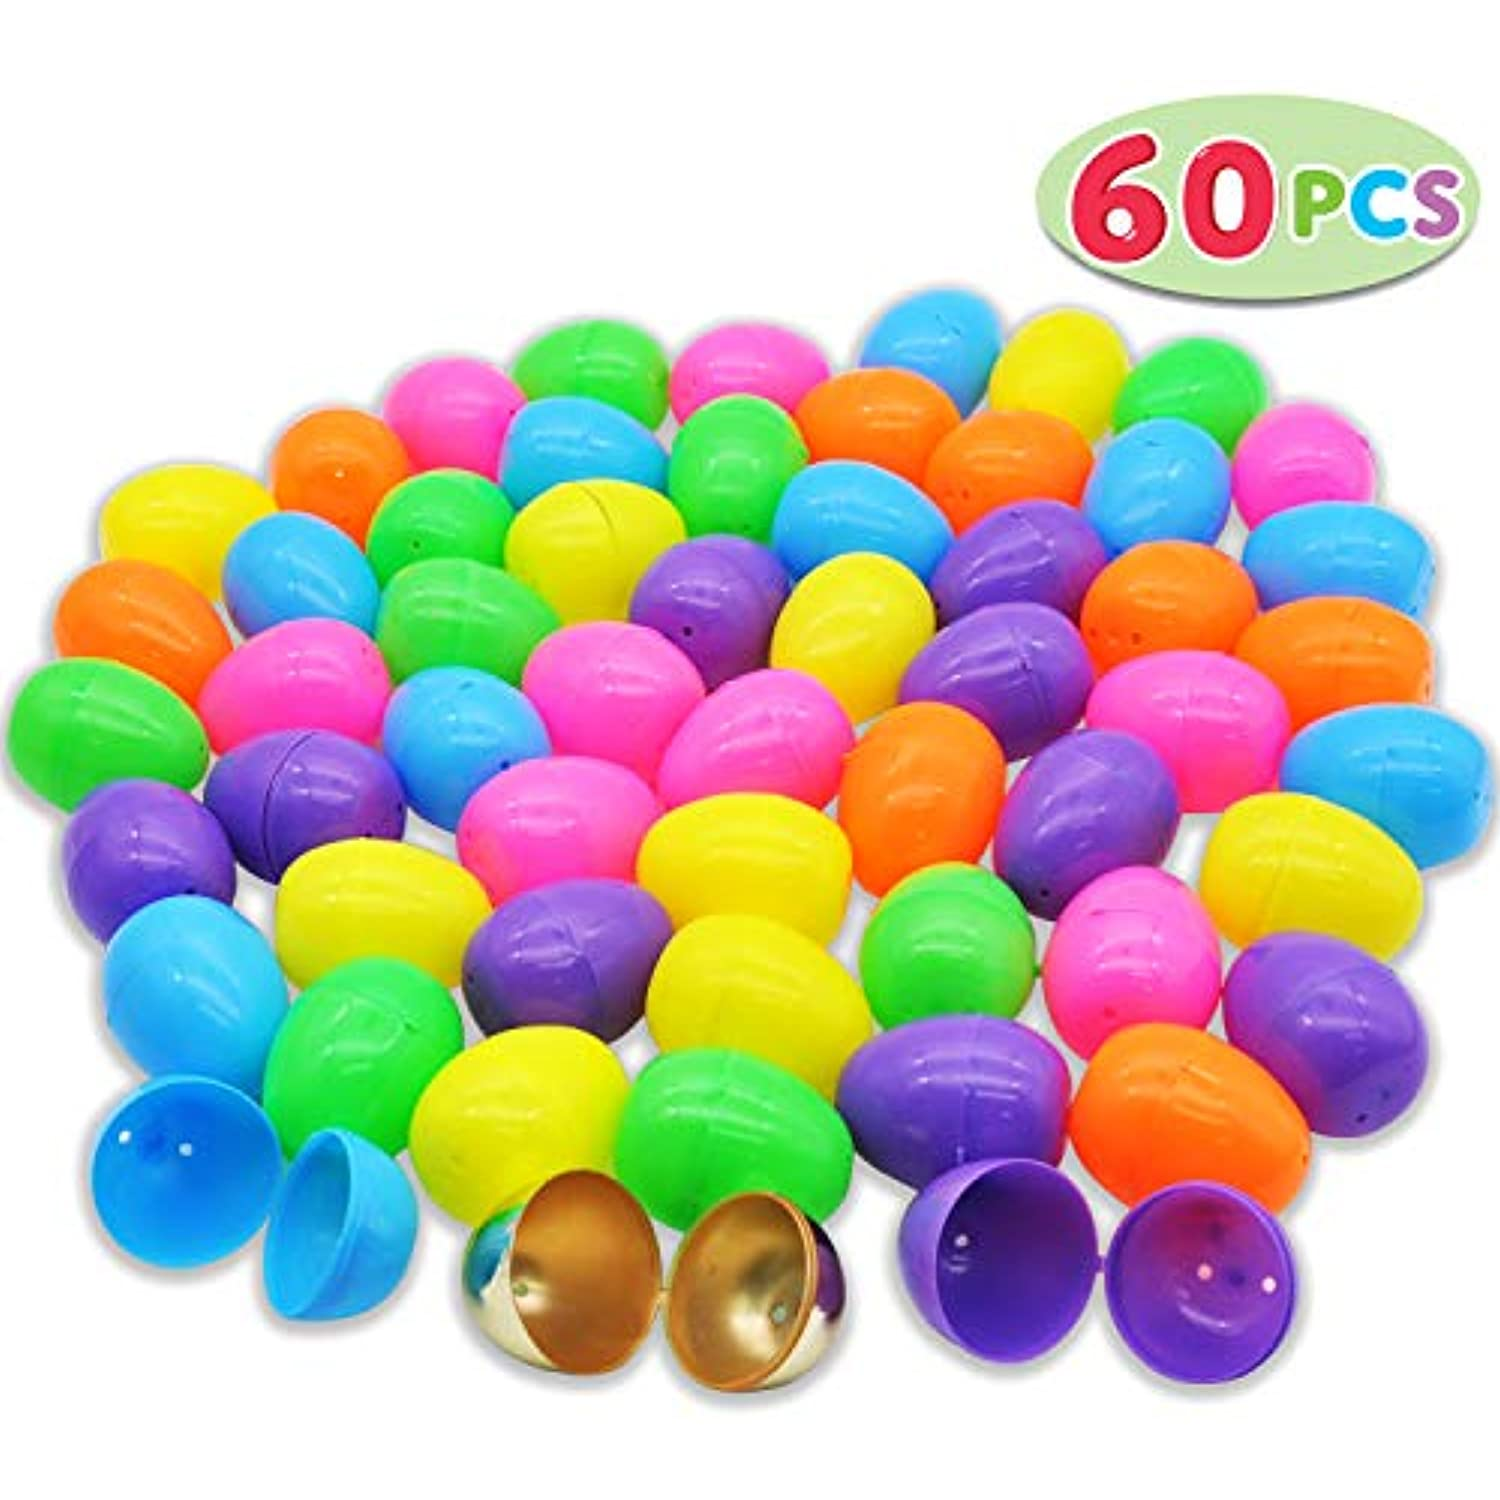 Easter Theme Party Favor Easter Eggs Hunt Basket Stuffers Filler Kissdram 66 Pieces 2.41 Easter Eggs Include 6 Golden Egg for Filling Specific Treats Classroom Prize Supplies